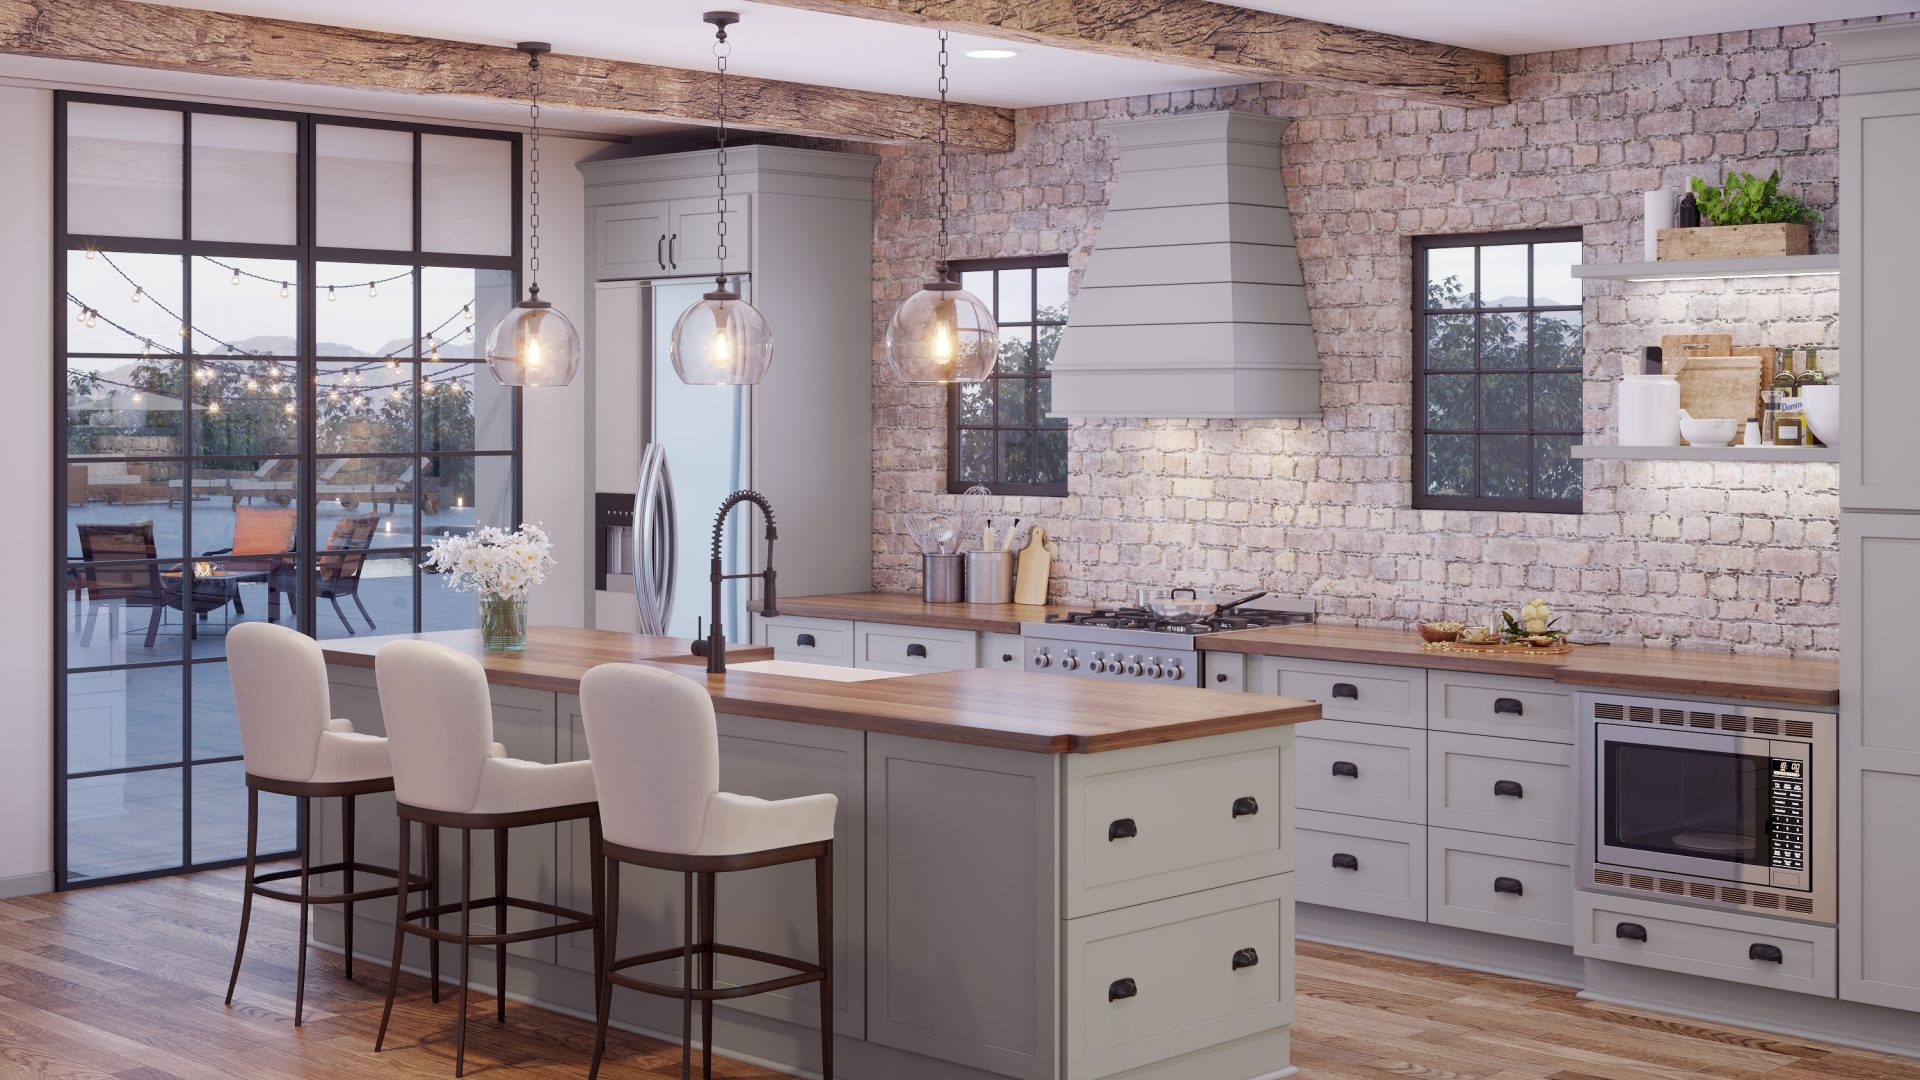 Shaker Style Kitchen Cabinets For Sale 2021